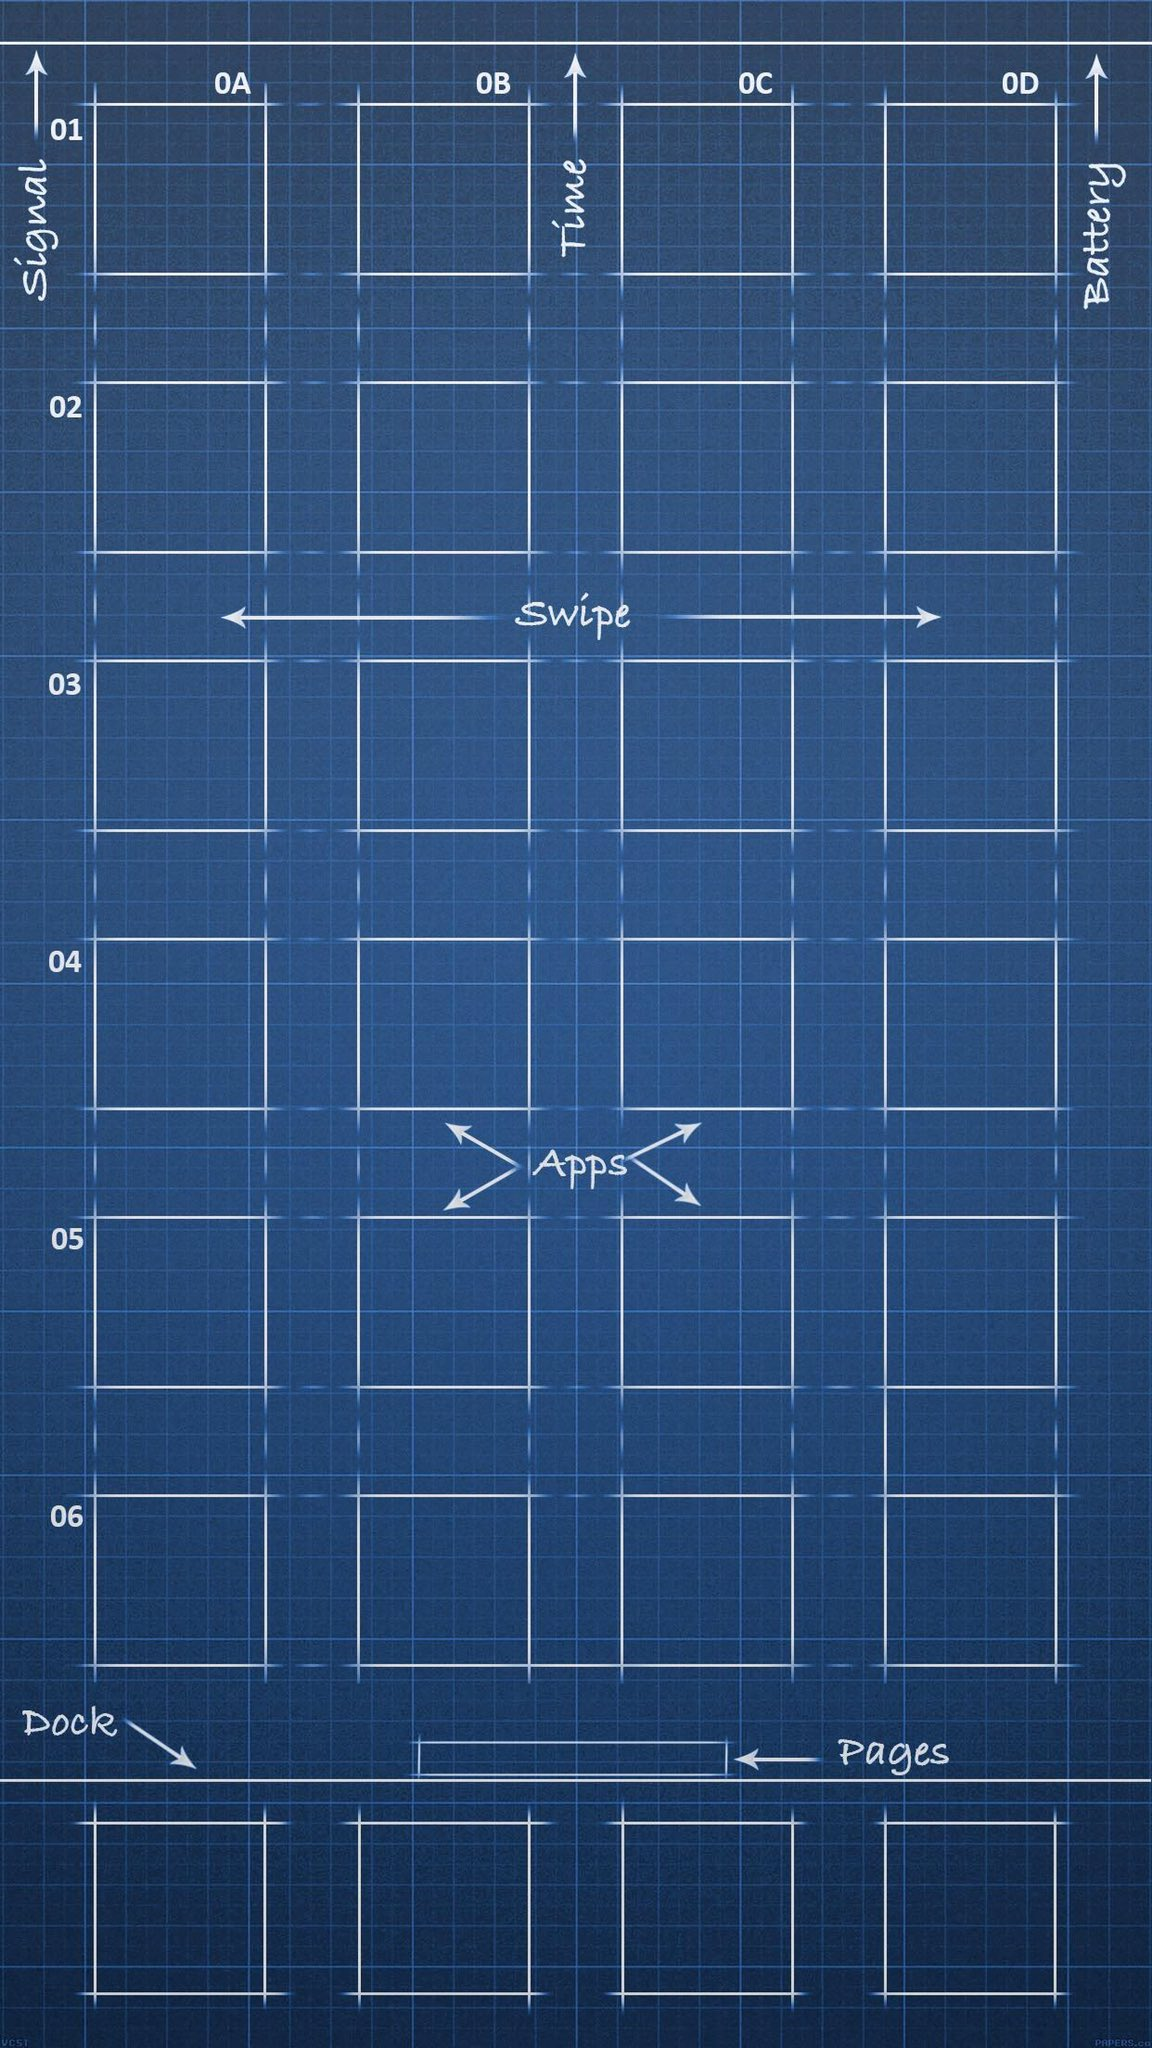 Iphone X Blueprint Wallpaper Marques Brownlee On Twitter Quot This Iphone Wallpaper So